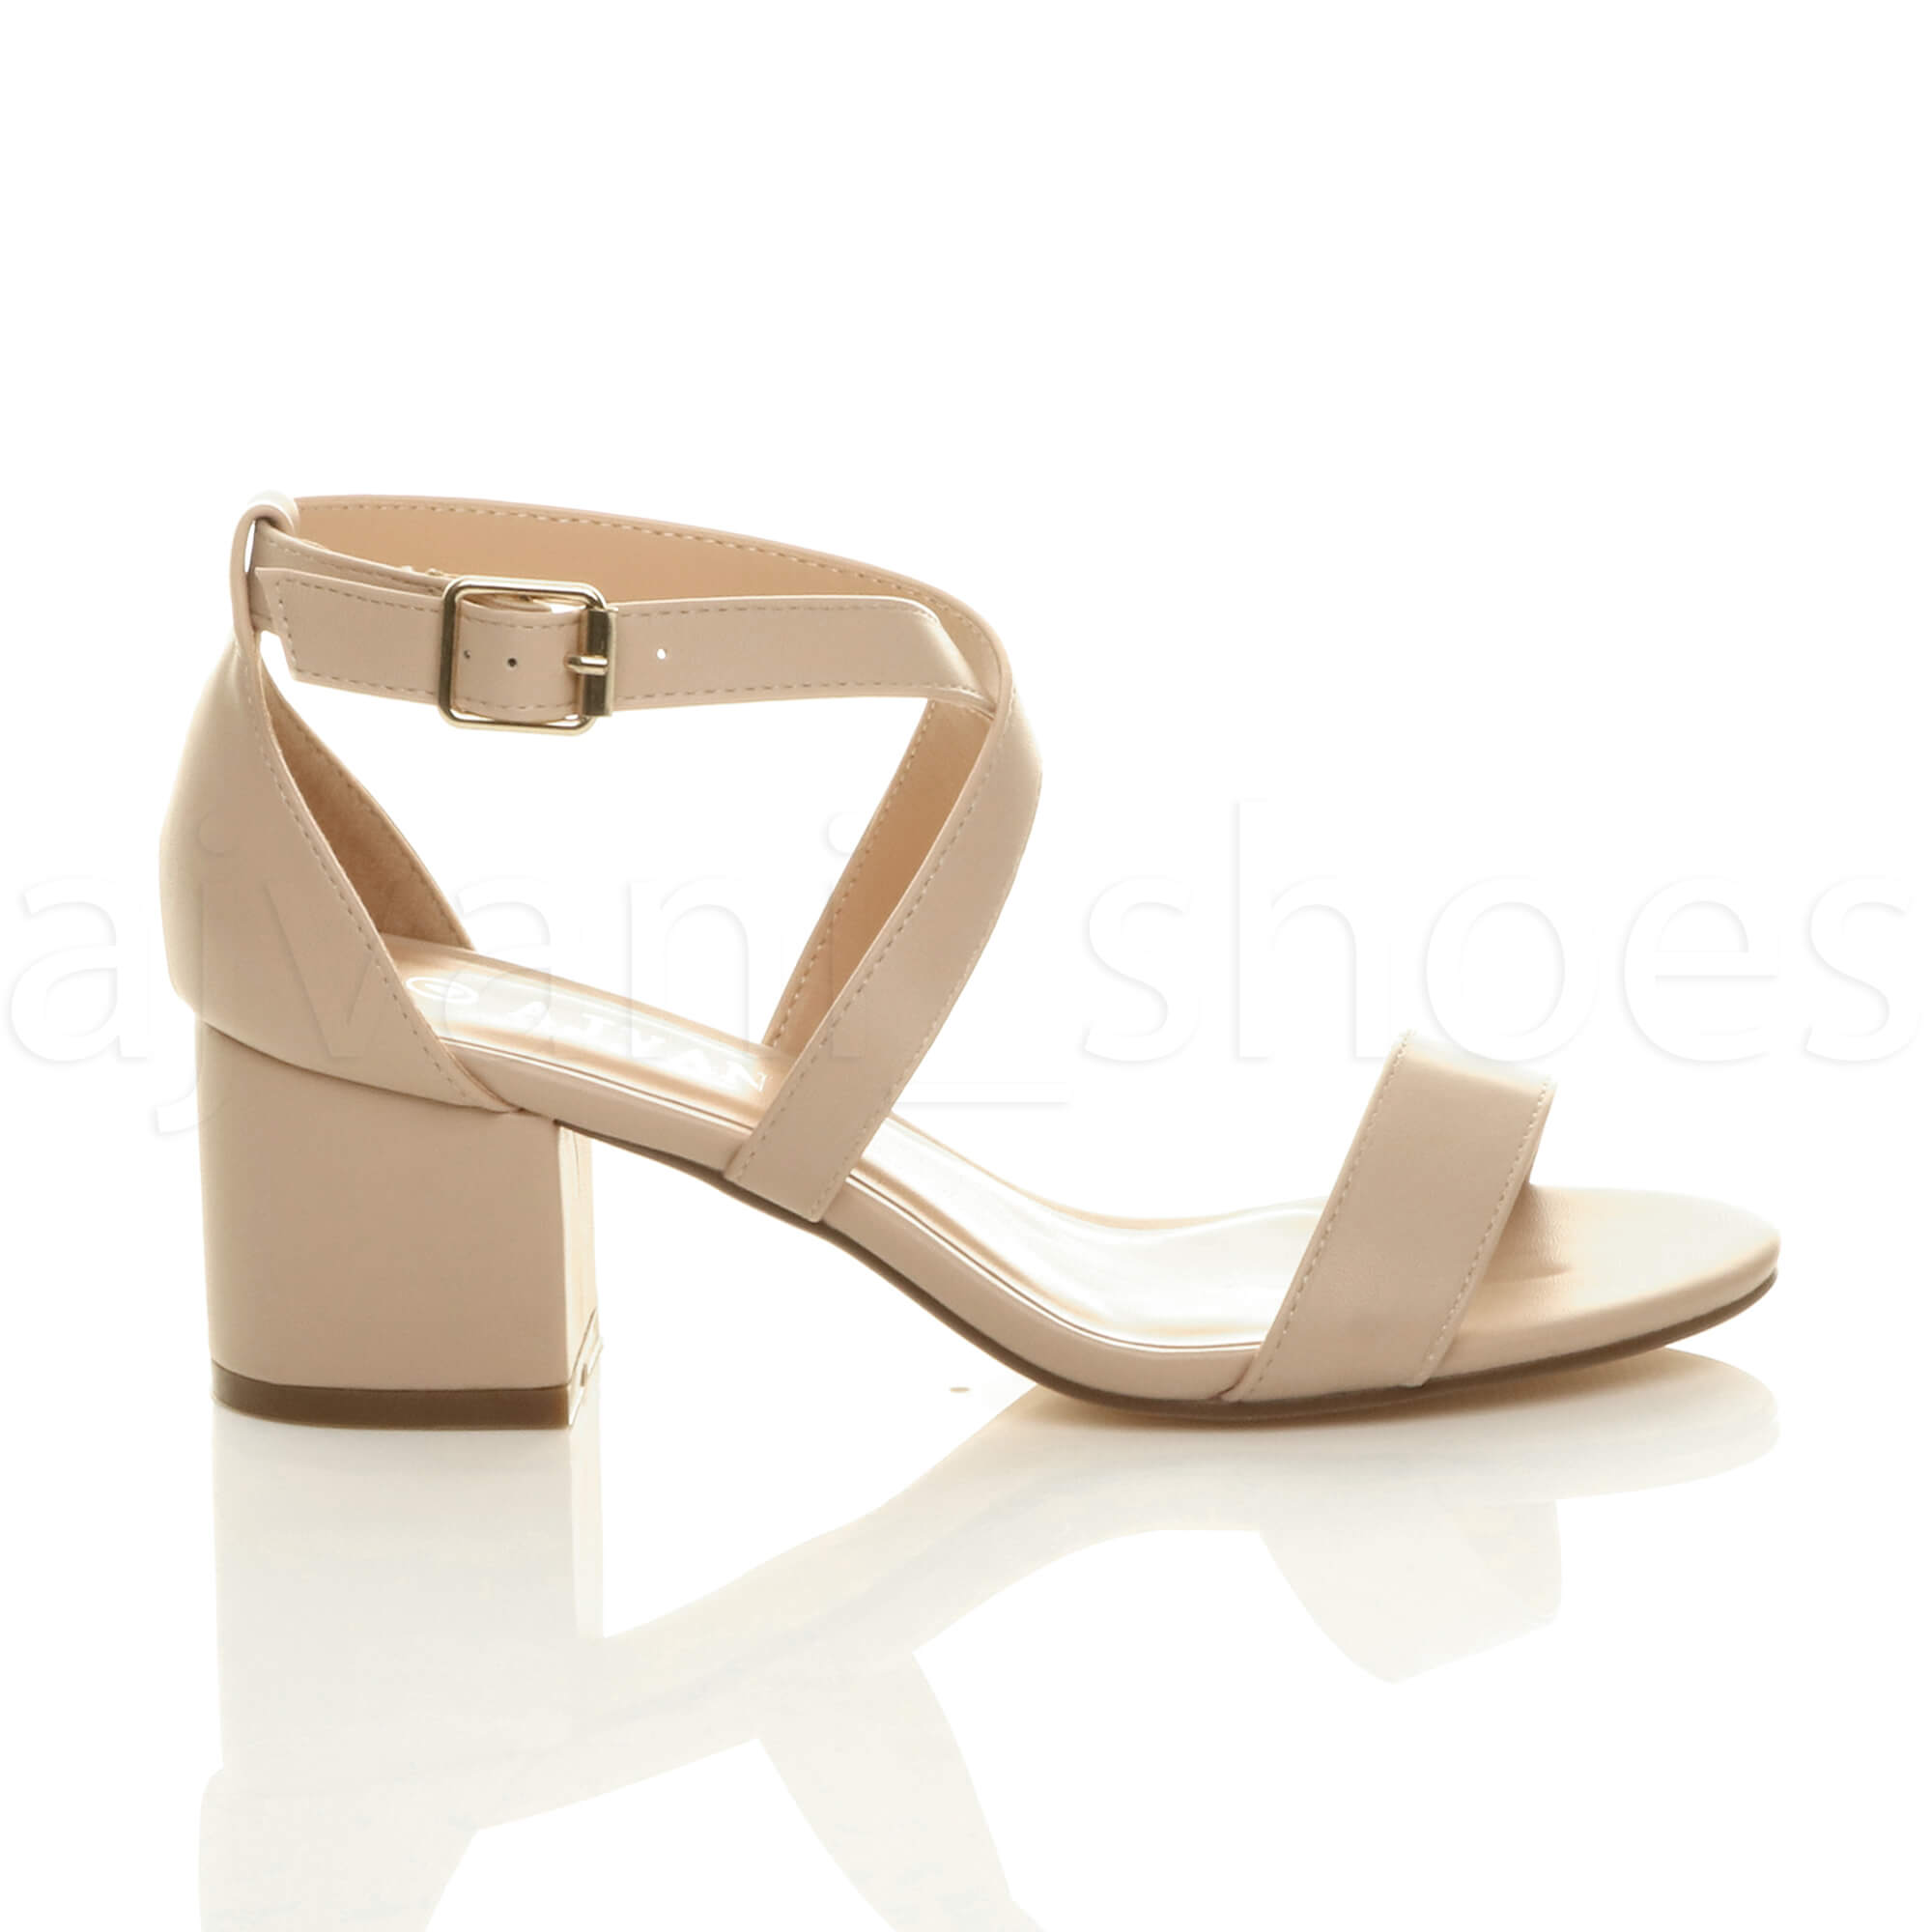 WOMENS-LADIES-MID-LOW-BLOCK-HEEL-CROSS-STRAPS-PARTY-STRAPPY-SANDALS-SHOES-SIZE thumbnail 52